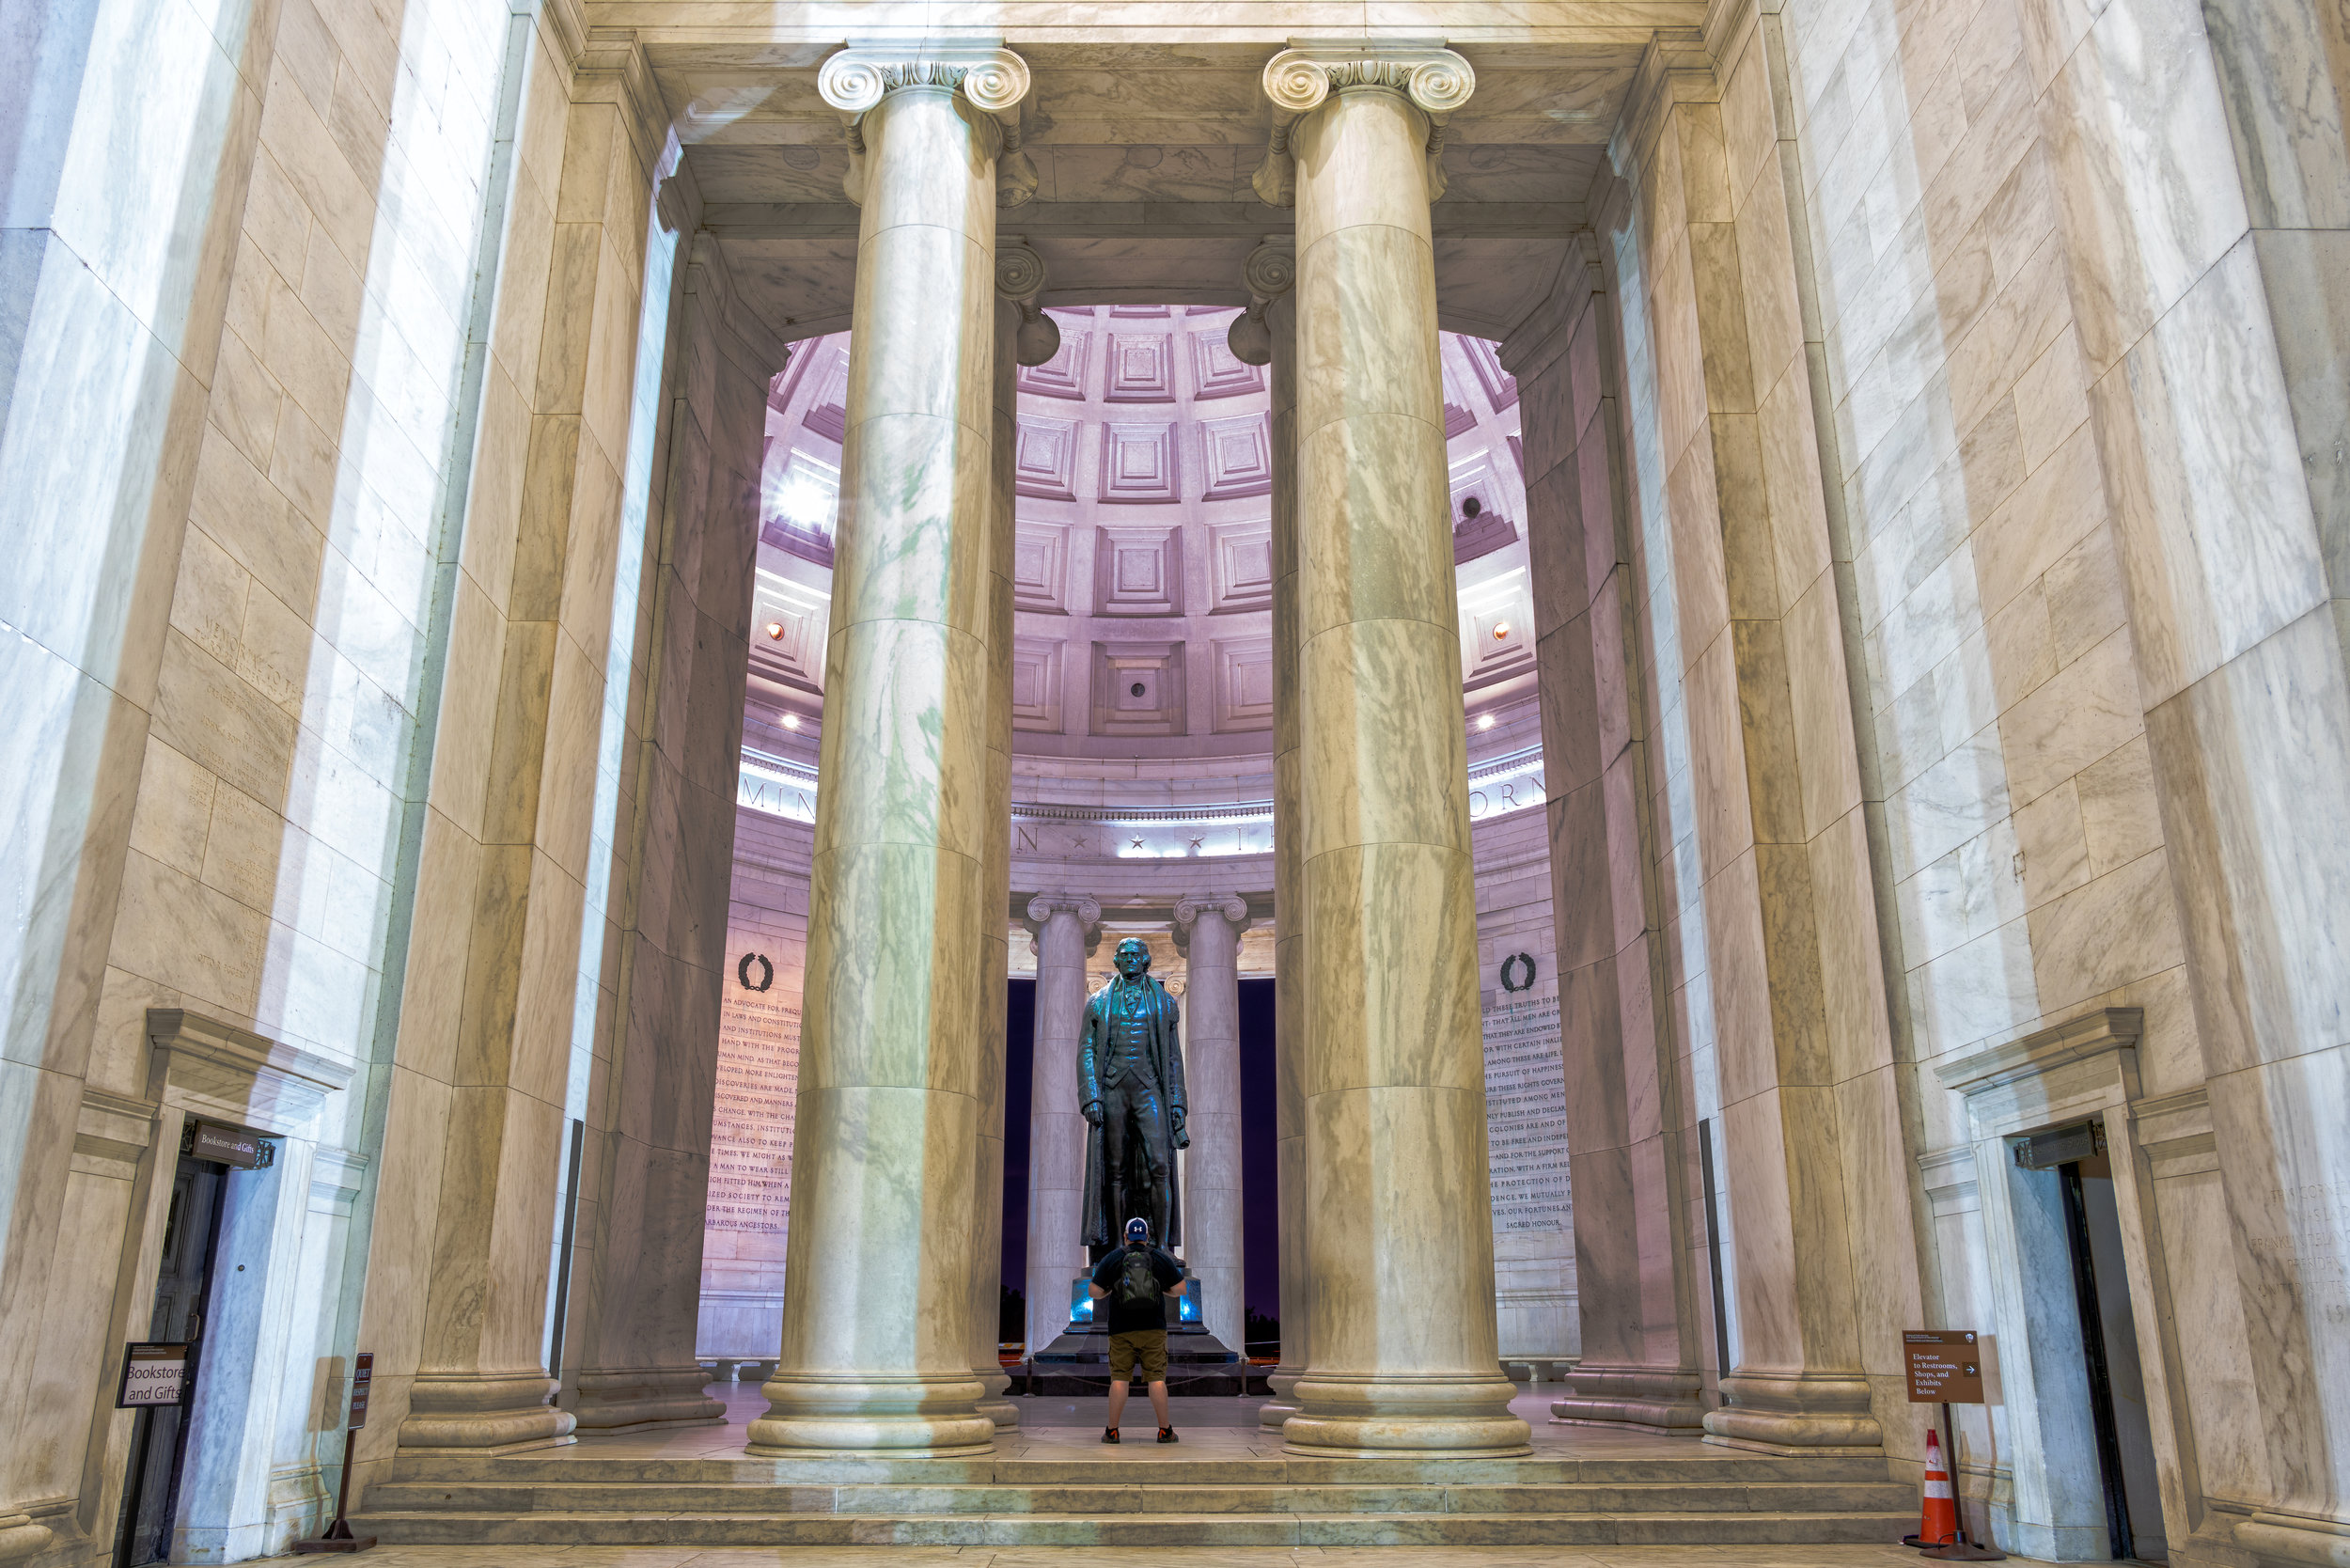 Attempted to frame the entrance and get me standing in front of Jefferson but my black shirt blended a bit. - 30 sec exposure